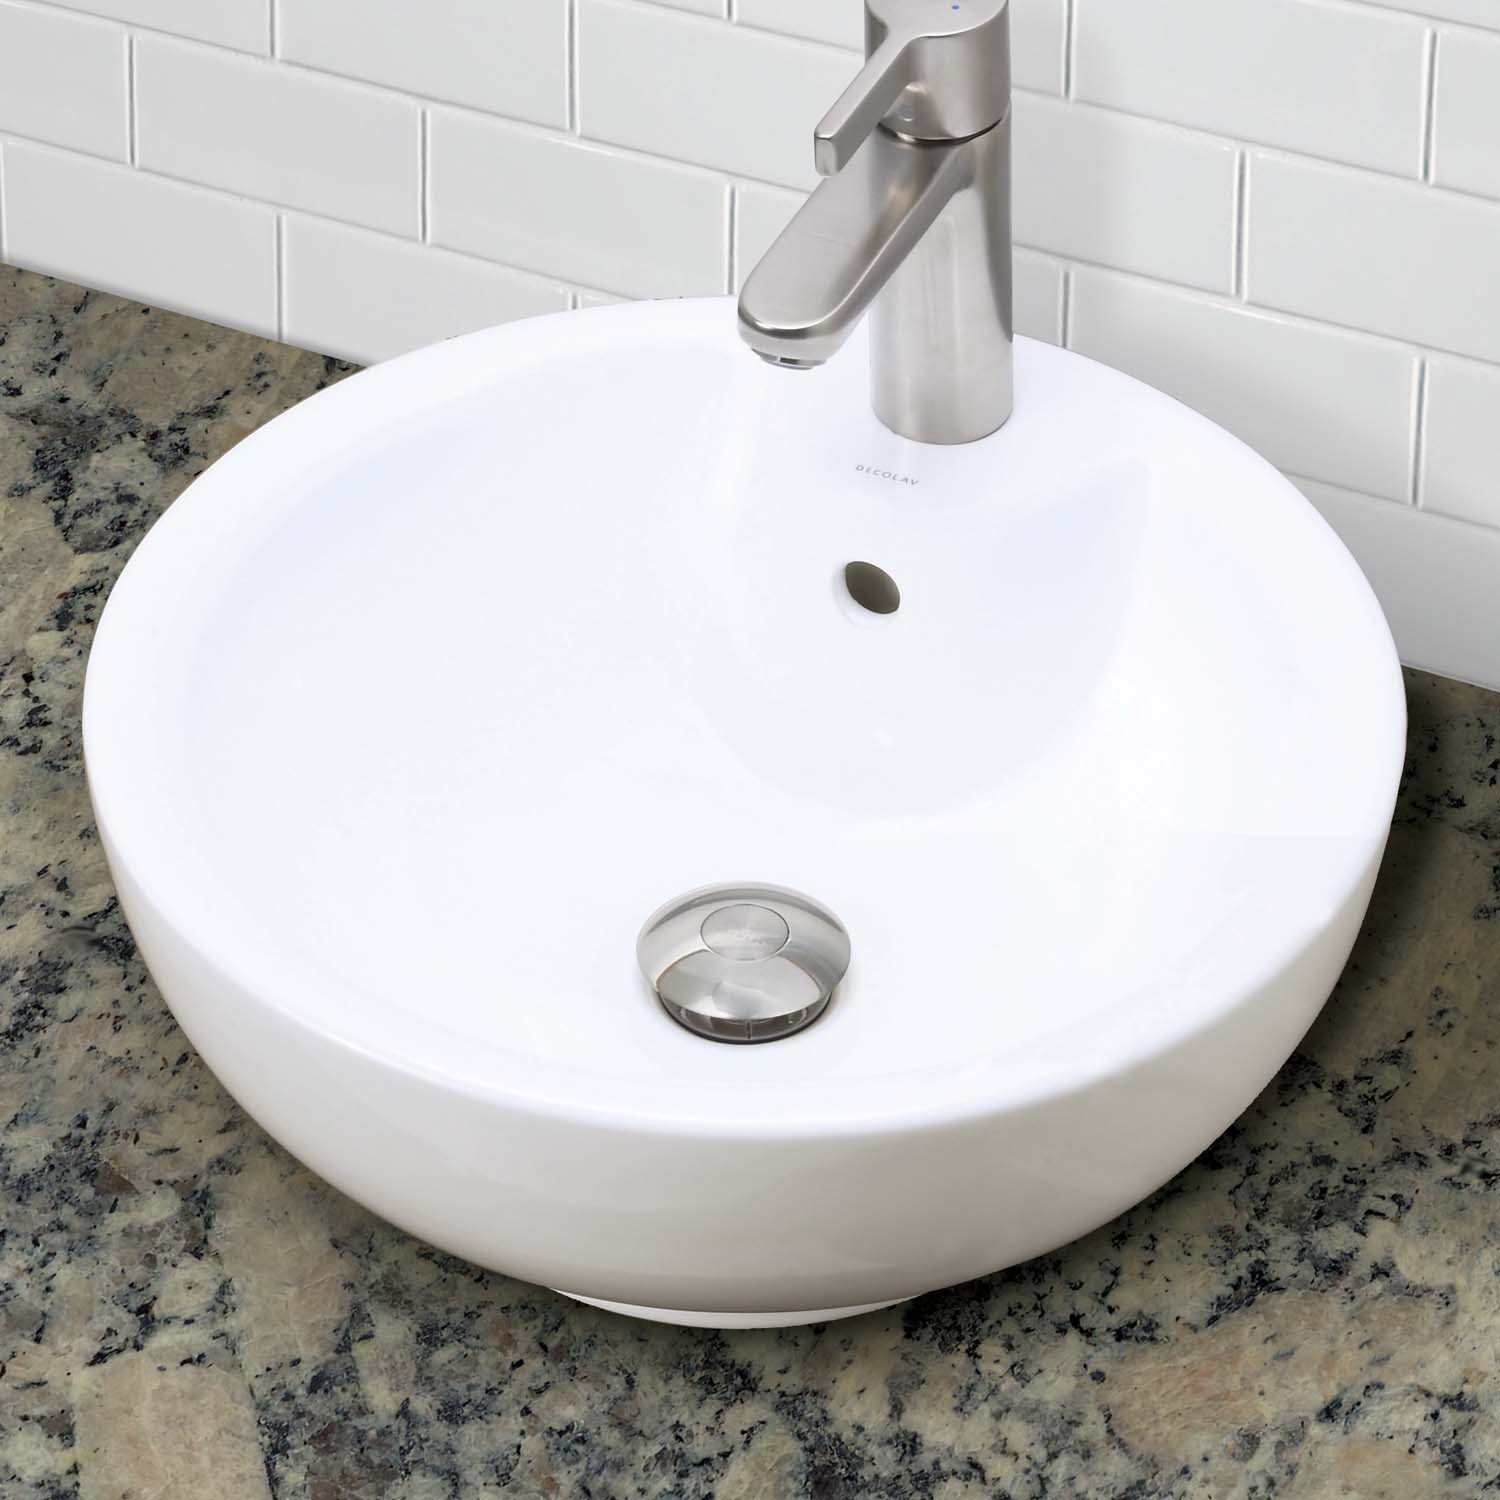 decolav kyra 1451 cwh round above counter vitreous china bathroom sink. Black Bedroom Furniture Sets. Home Design Ideas